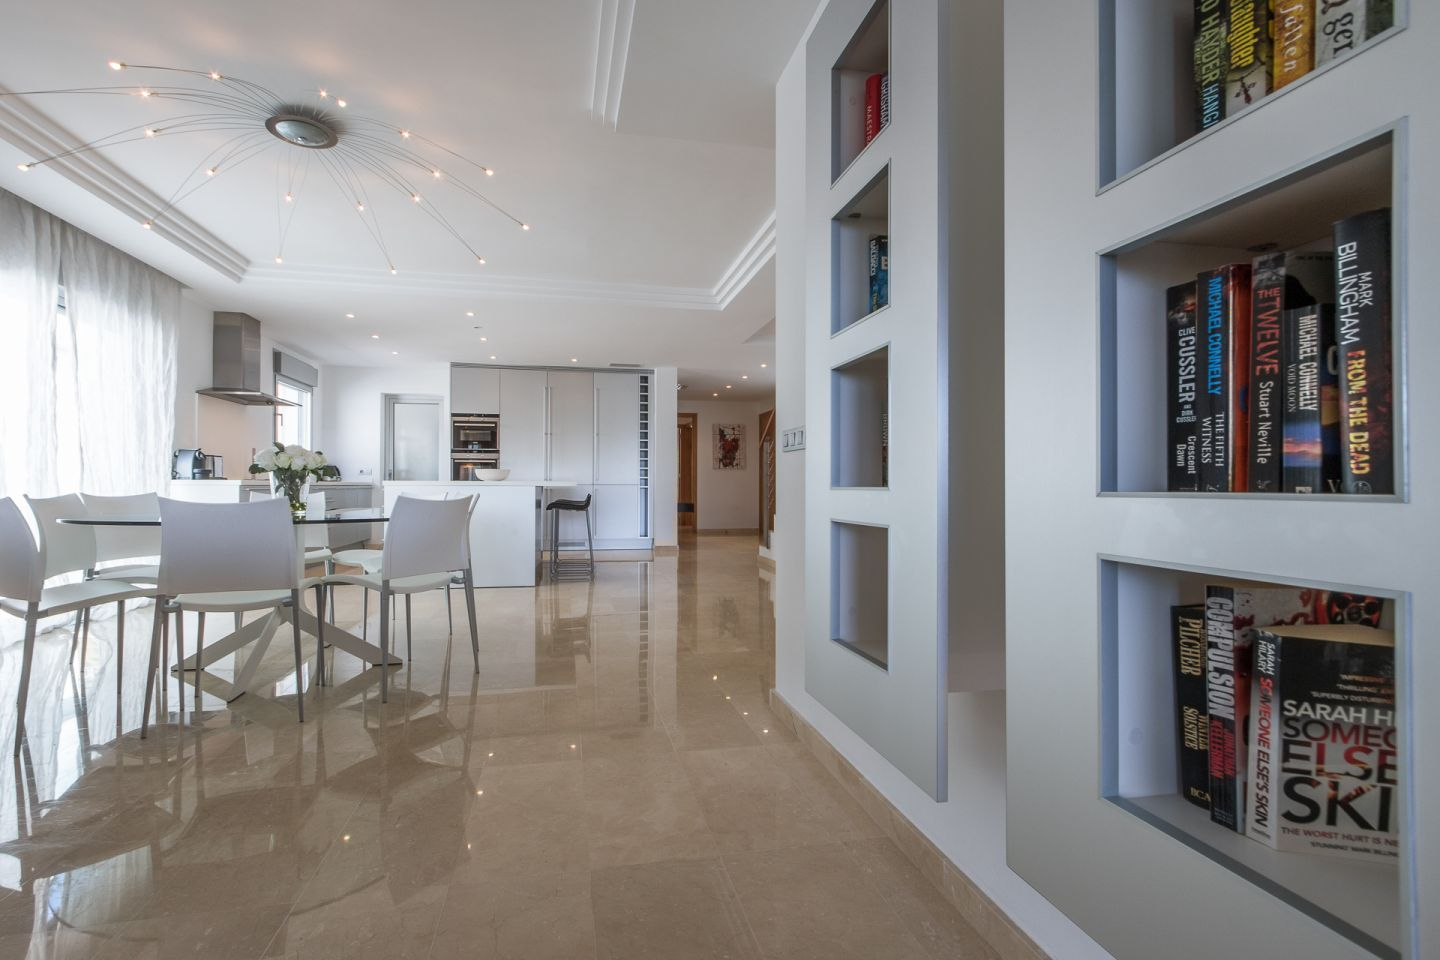 4 Bed Penthouse for sale in PUERTO POLLENSA 13